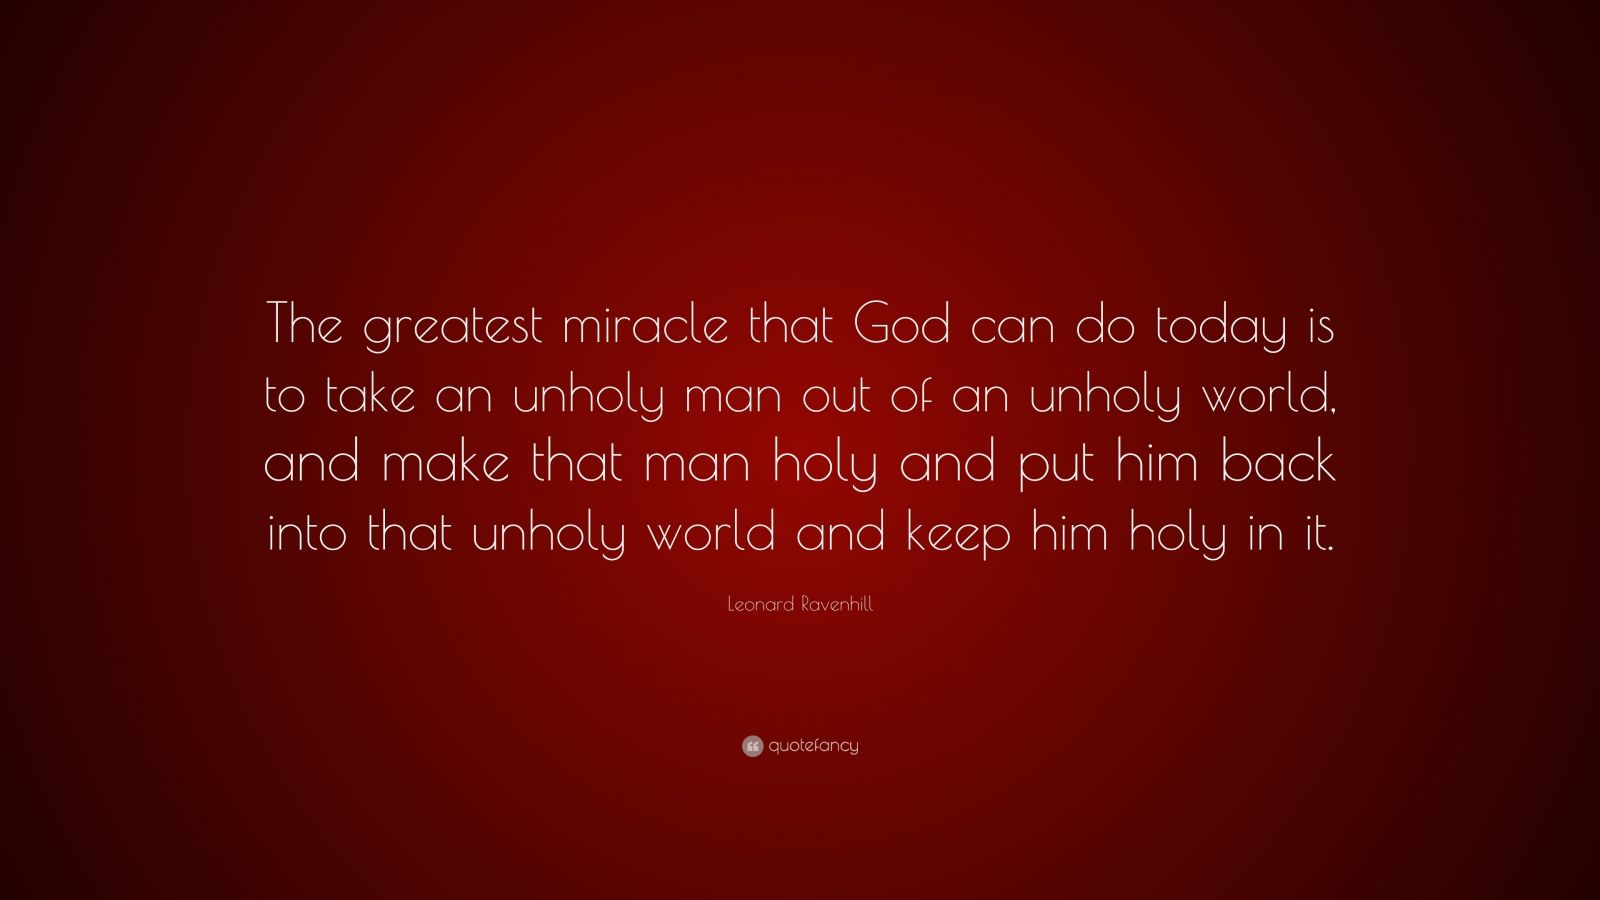 """Leonard Ravenhill Quote: """"The greatest miracle that God can do today is to take an unholy man out of an unholy world, and make that man holy and put him back into that unholy world and keep him holy in it."""""""